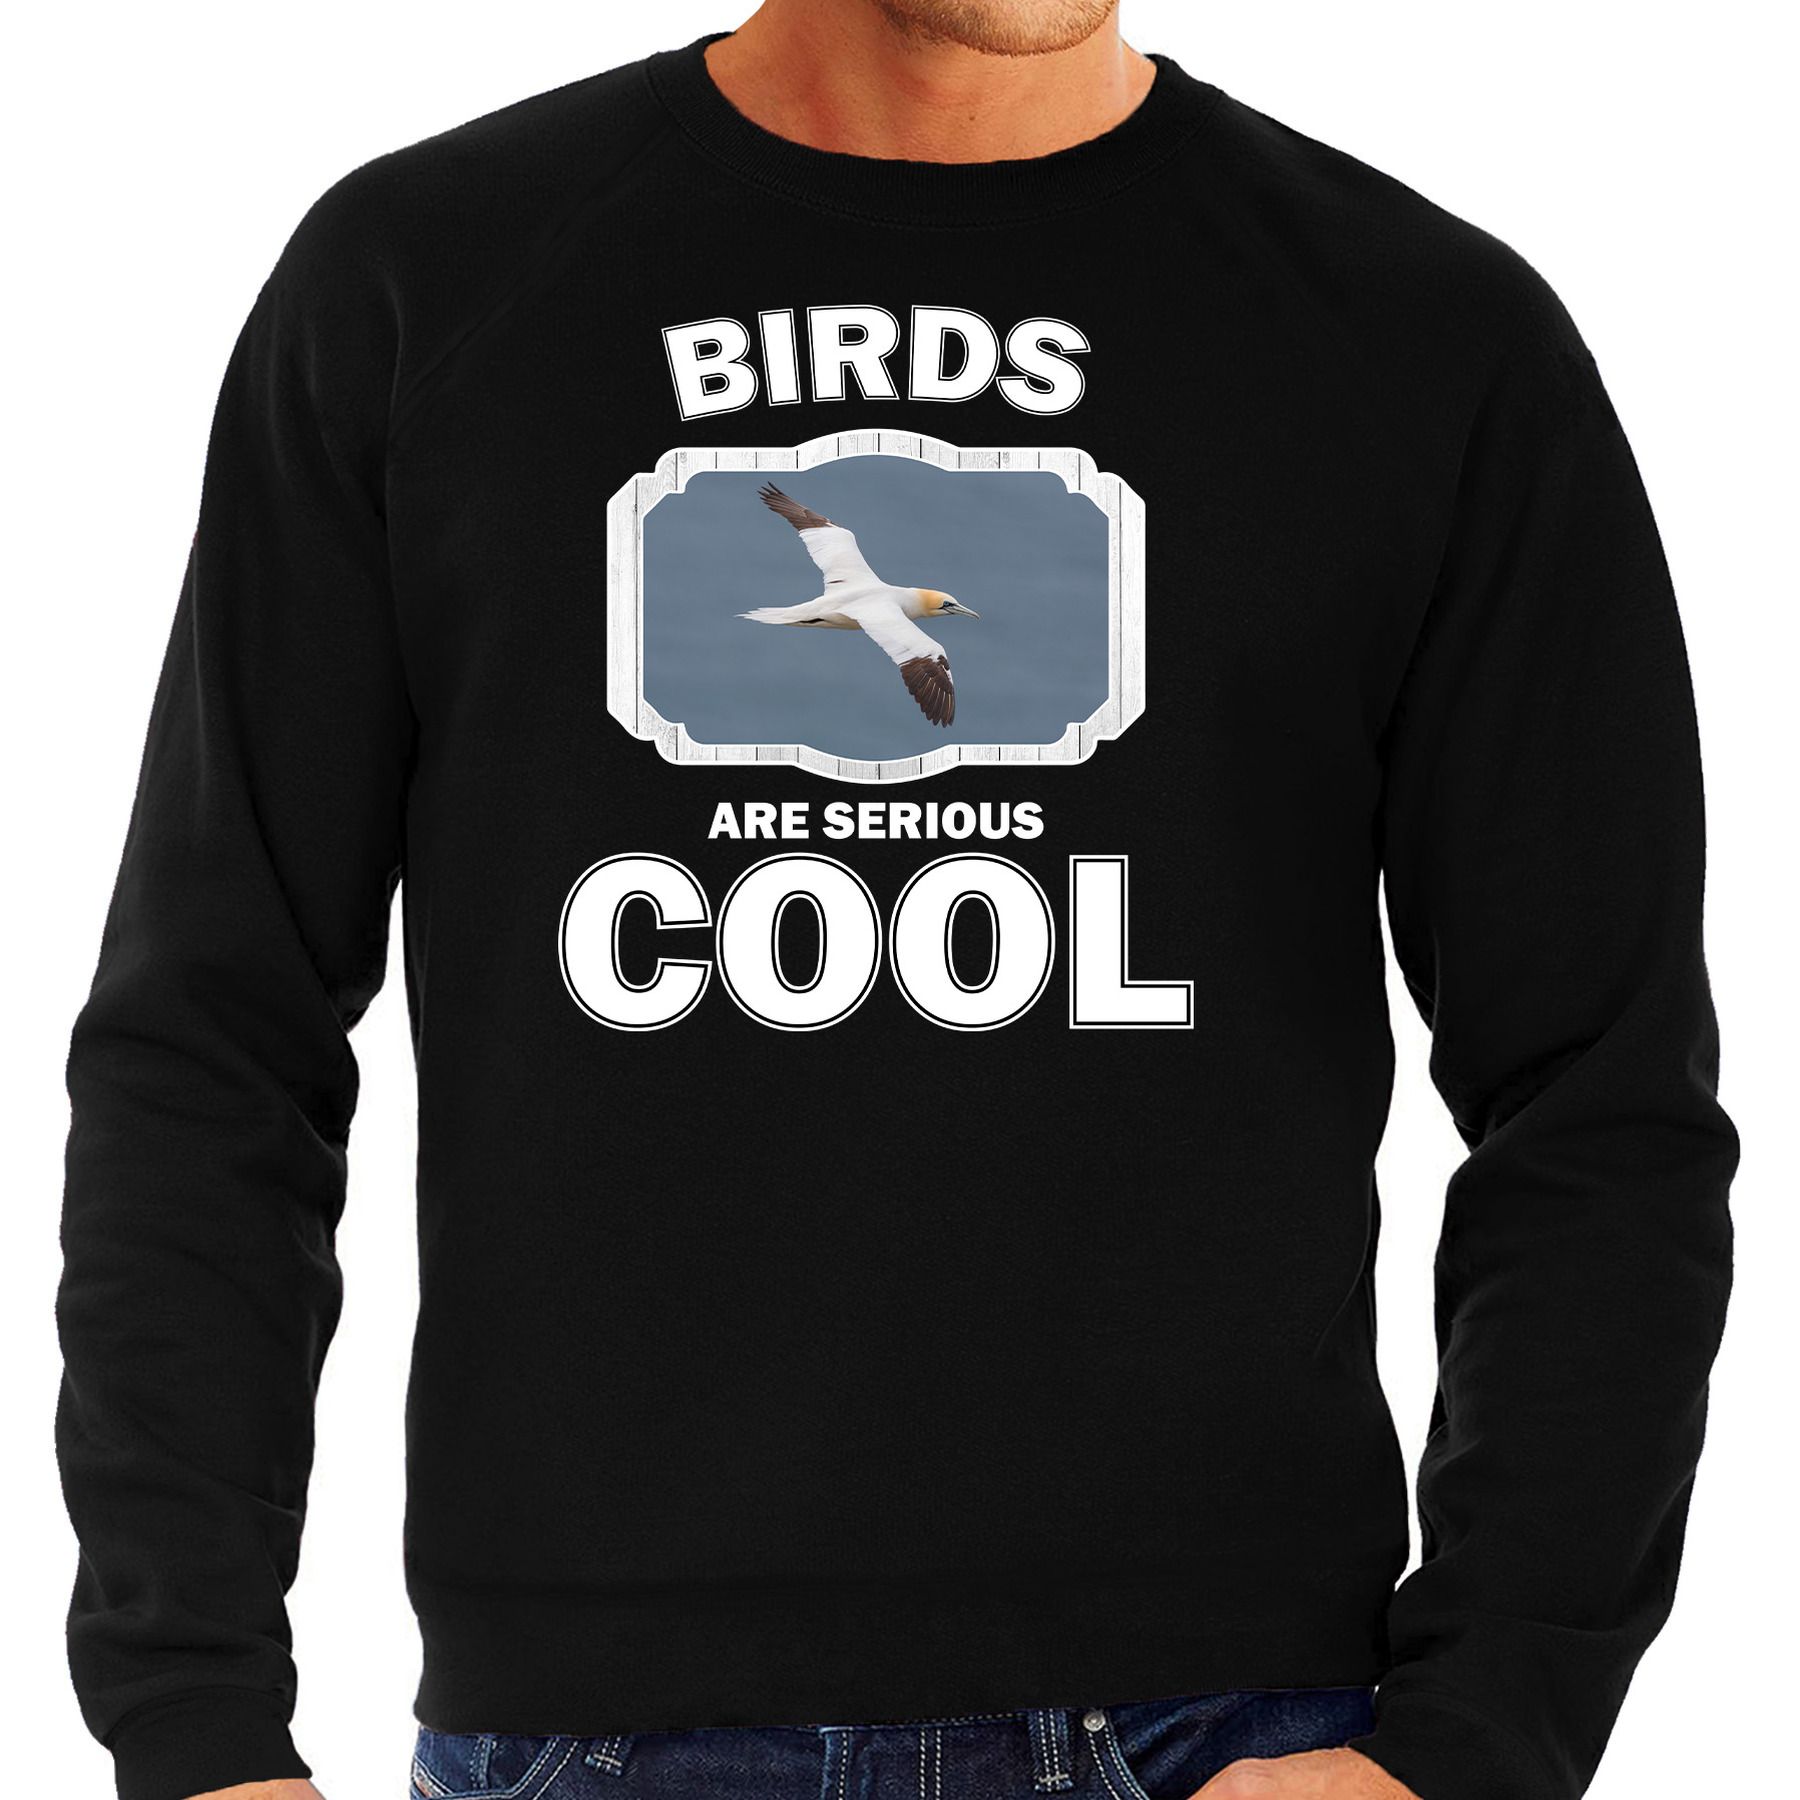 Sweater birds are serious cool zwart heren - vogels/ jan van gent vogel trui